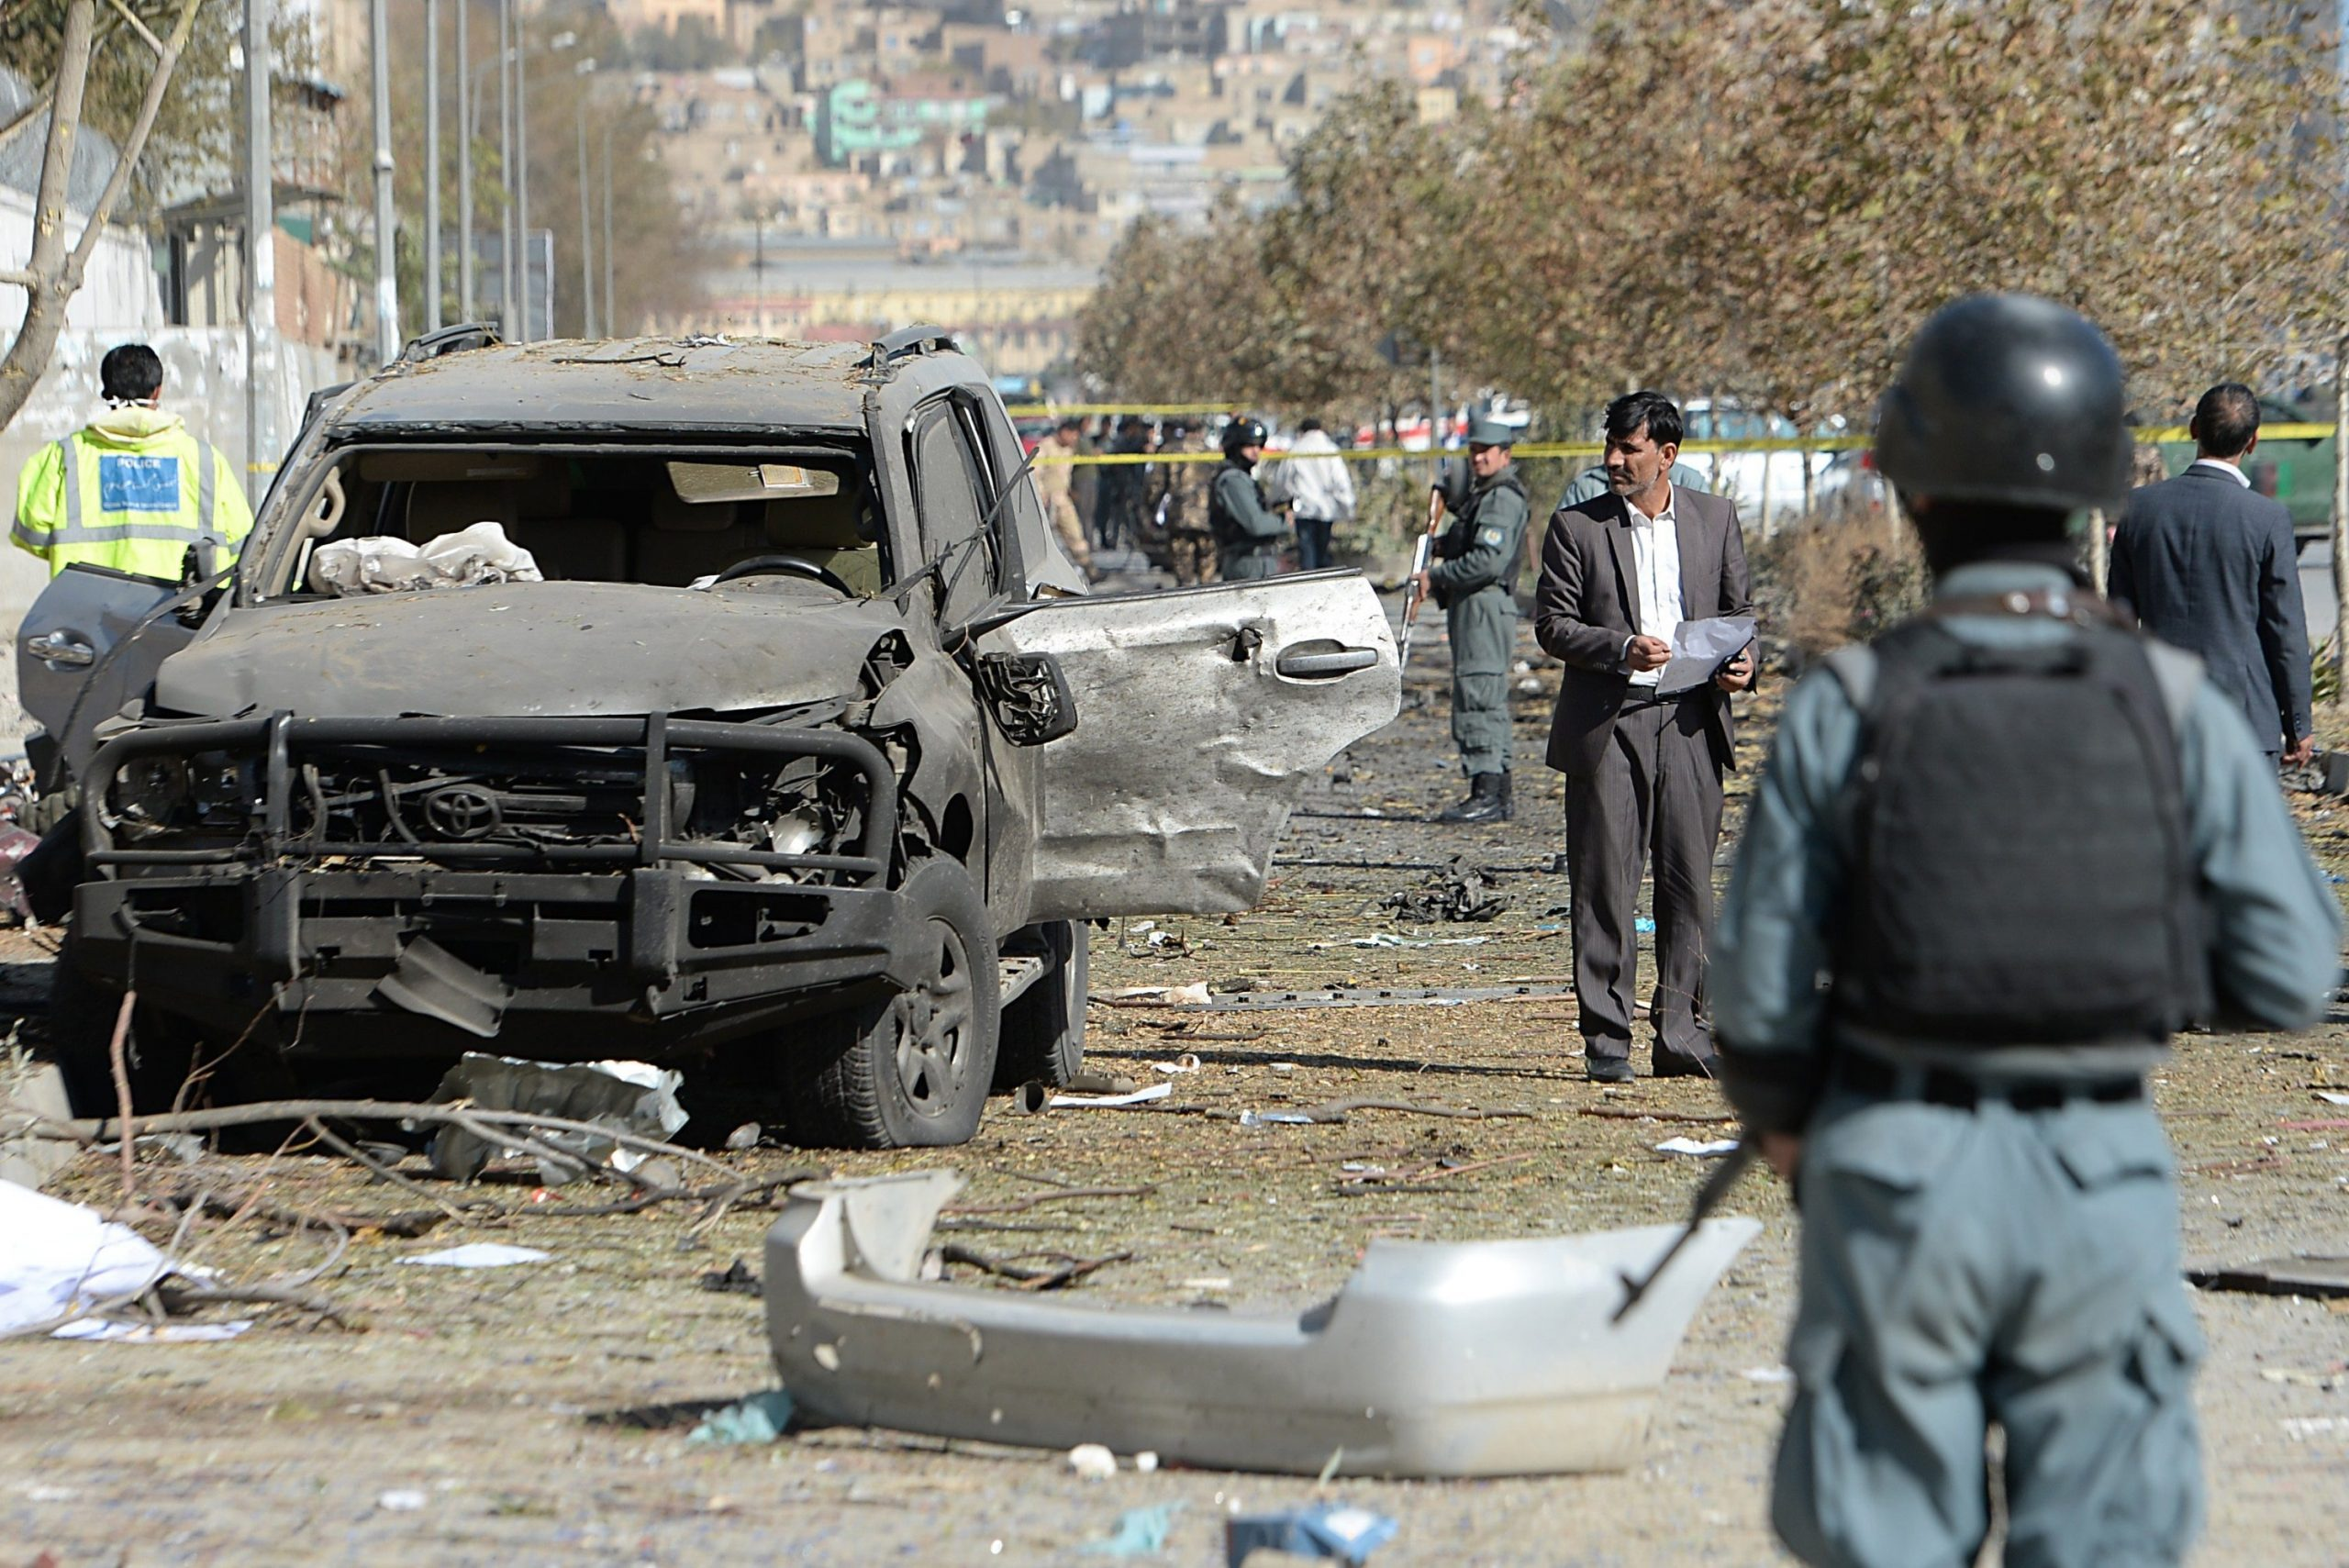 Afghan car bomb toll at least 14 dead, 90 wounded